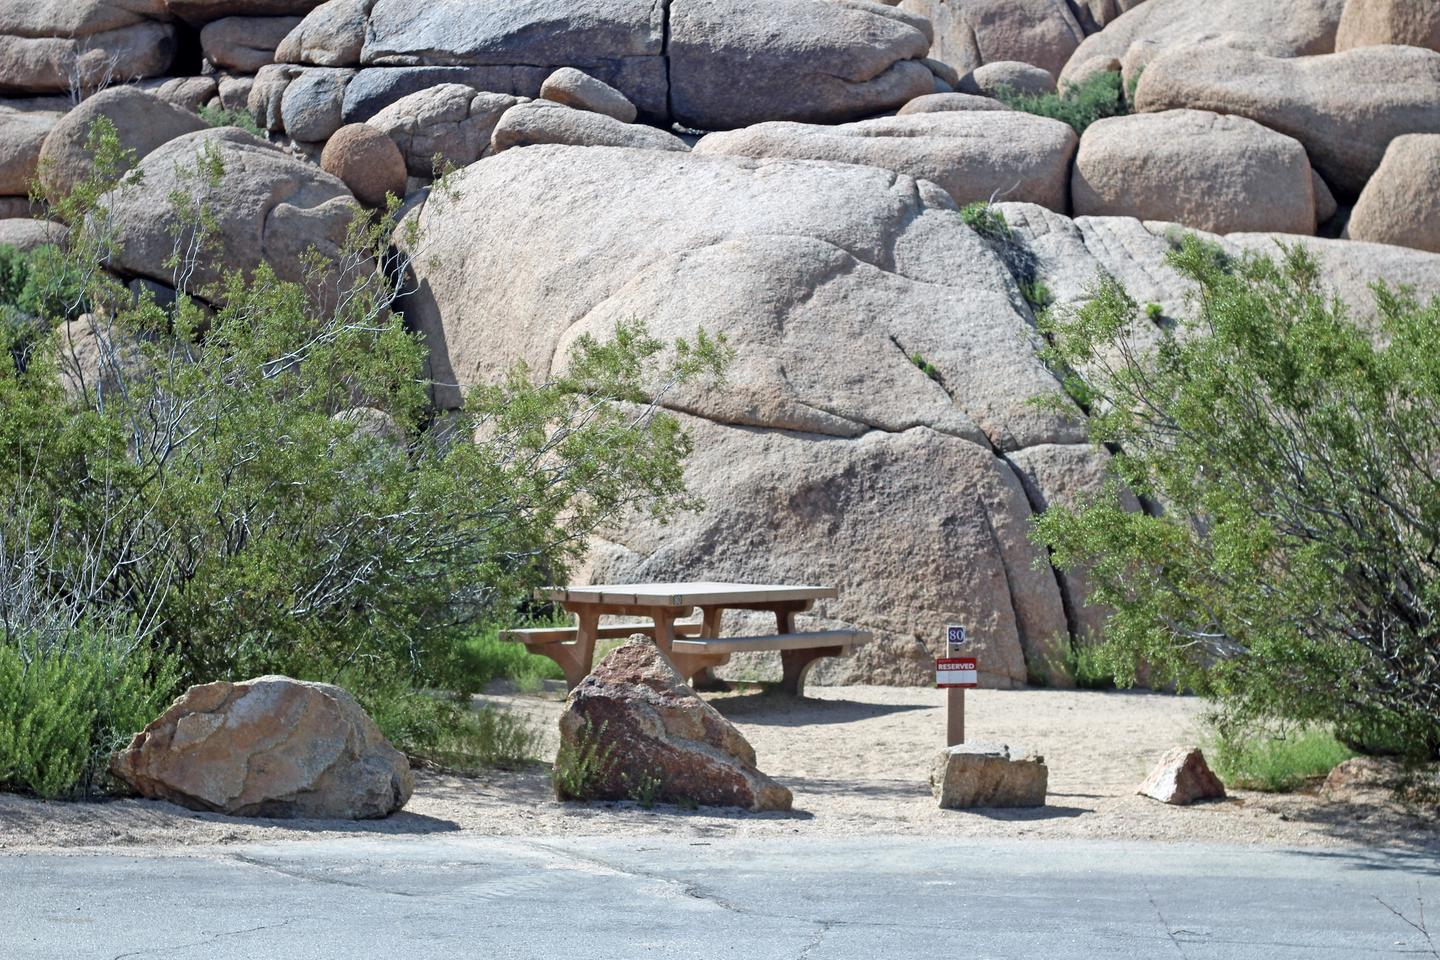 Campsite  with picnic table surrounded by boulders and green plants.Campsite.